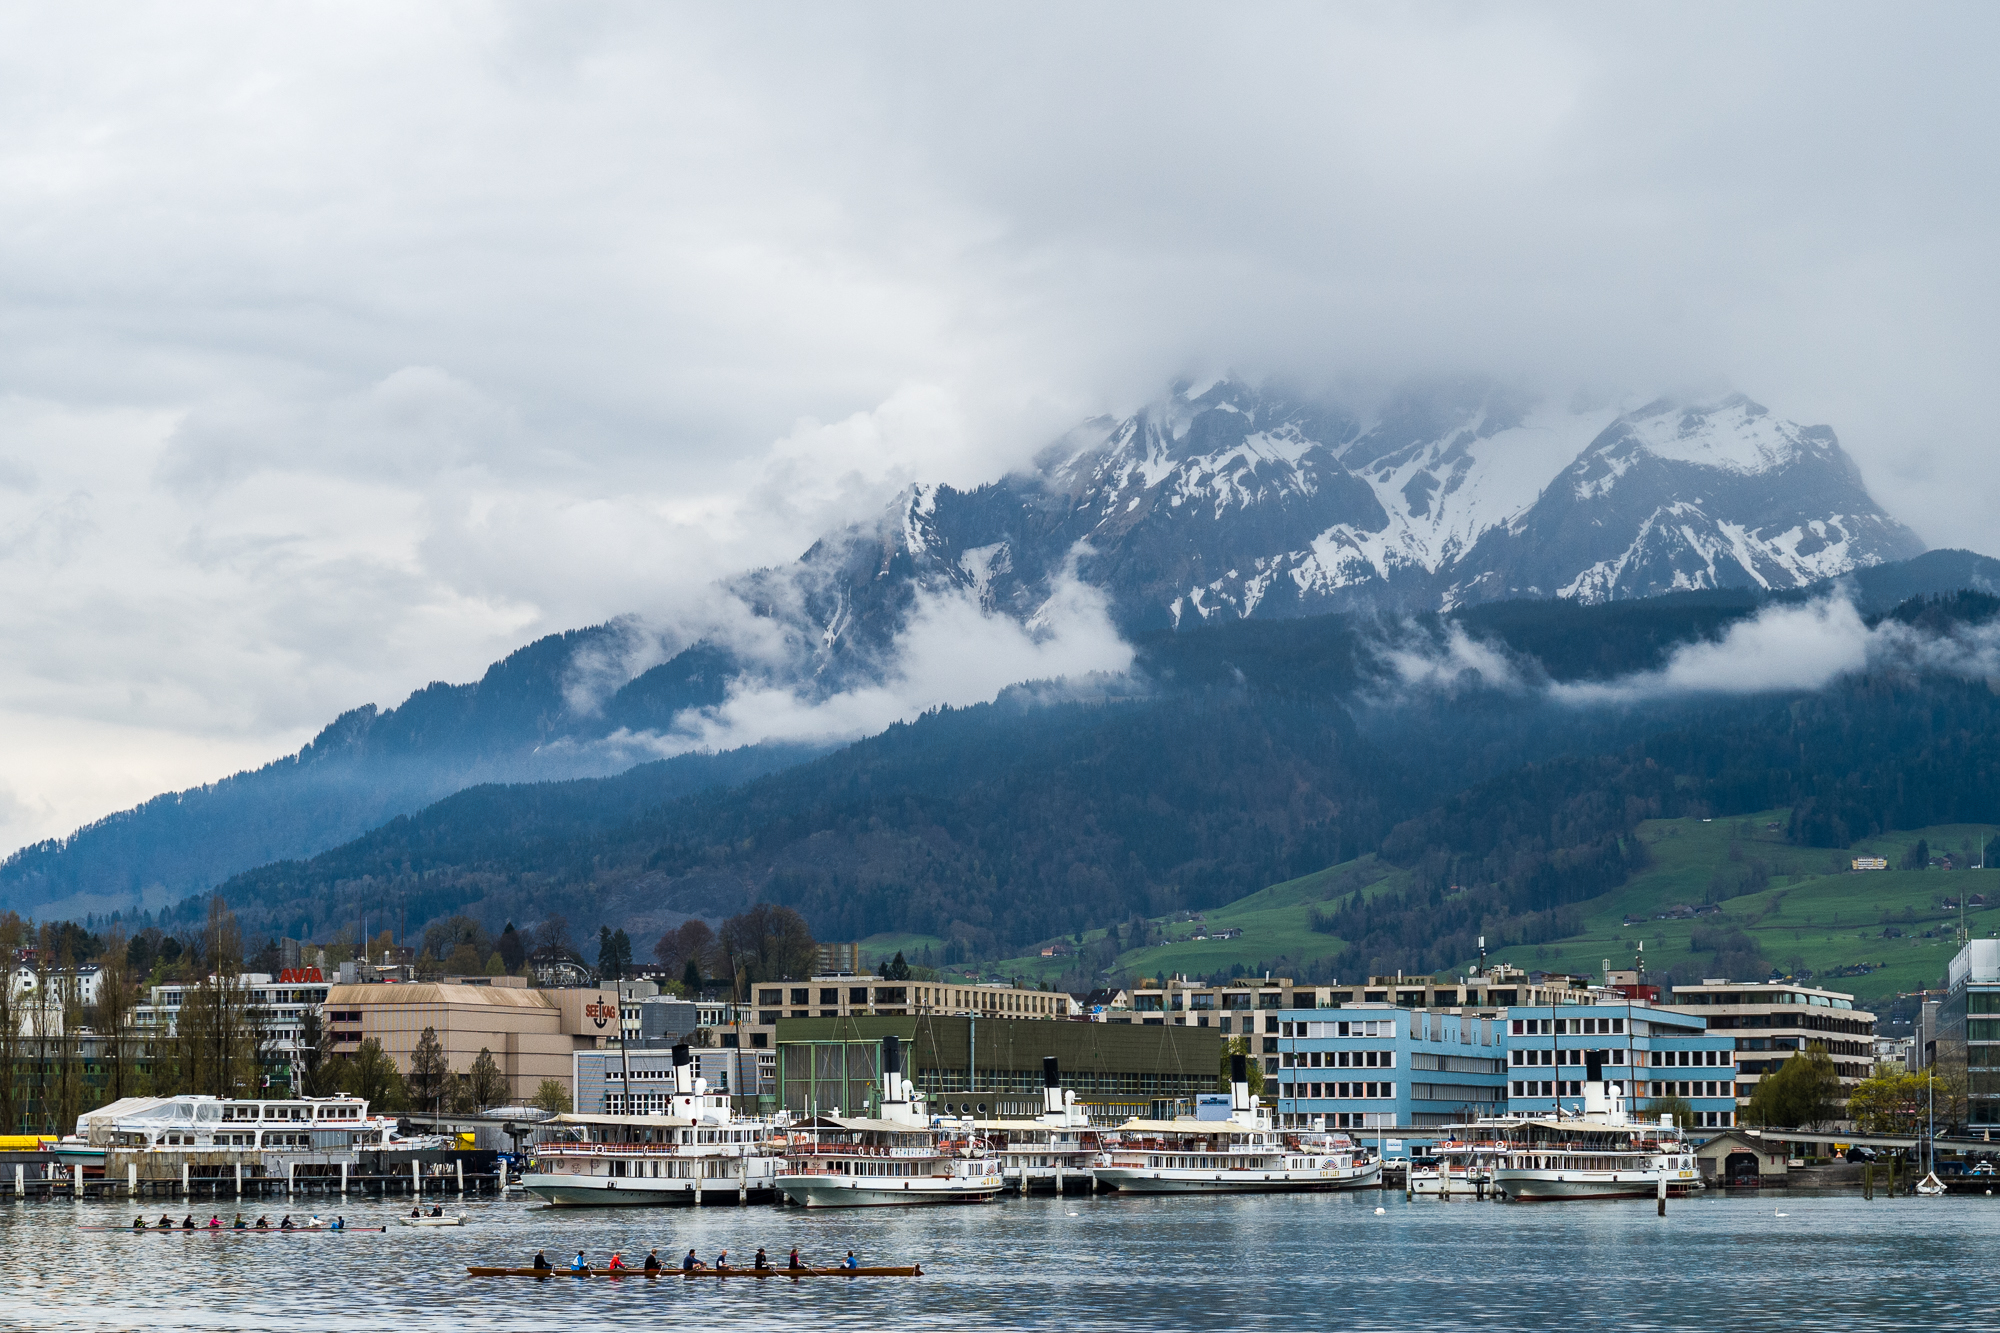 Watch row crew practice on Lake Lucerne from the Switzerhof Hotel